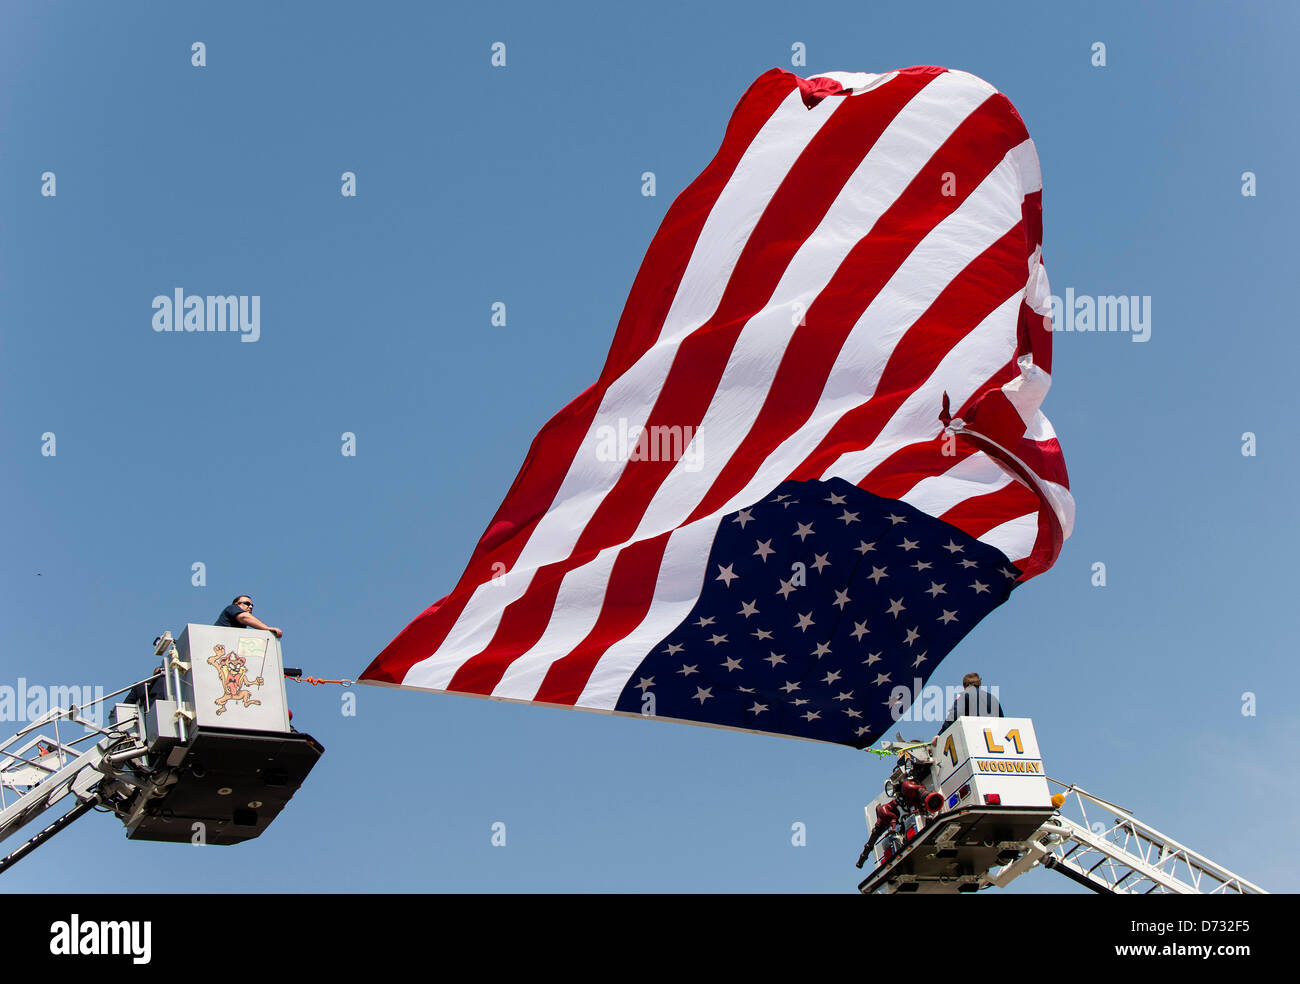 April 27, 2013 - West, Texas, U.S -  Firefighters drape a large American flag over the funeral procession through Stock Photo